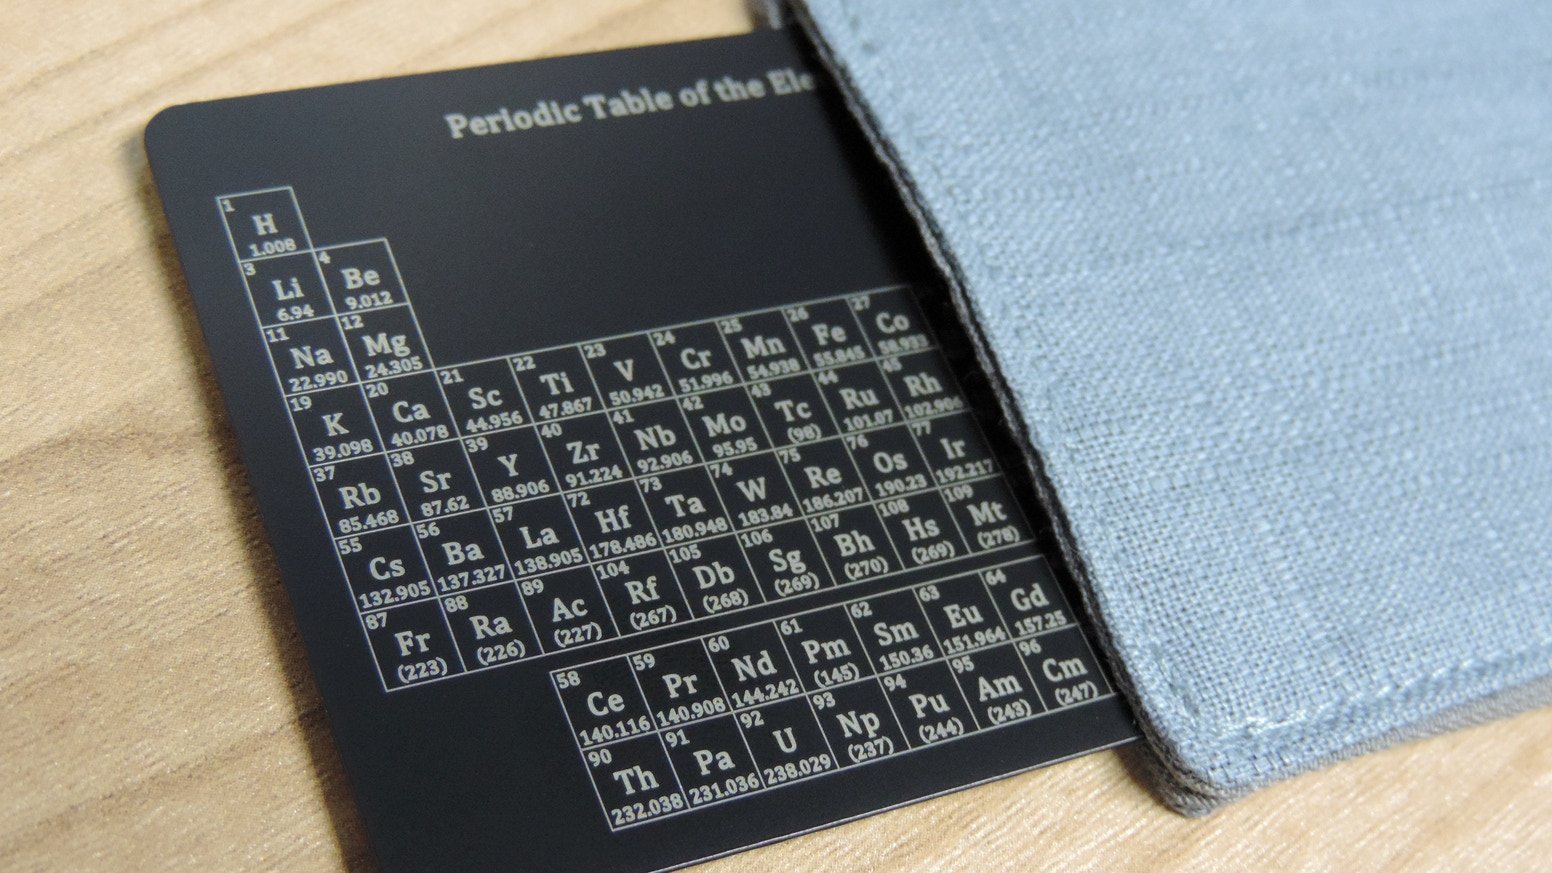 A Pocket-Sized Periodic Table - Laser Engraved on a Metal Card